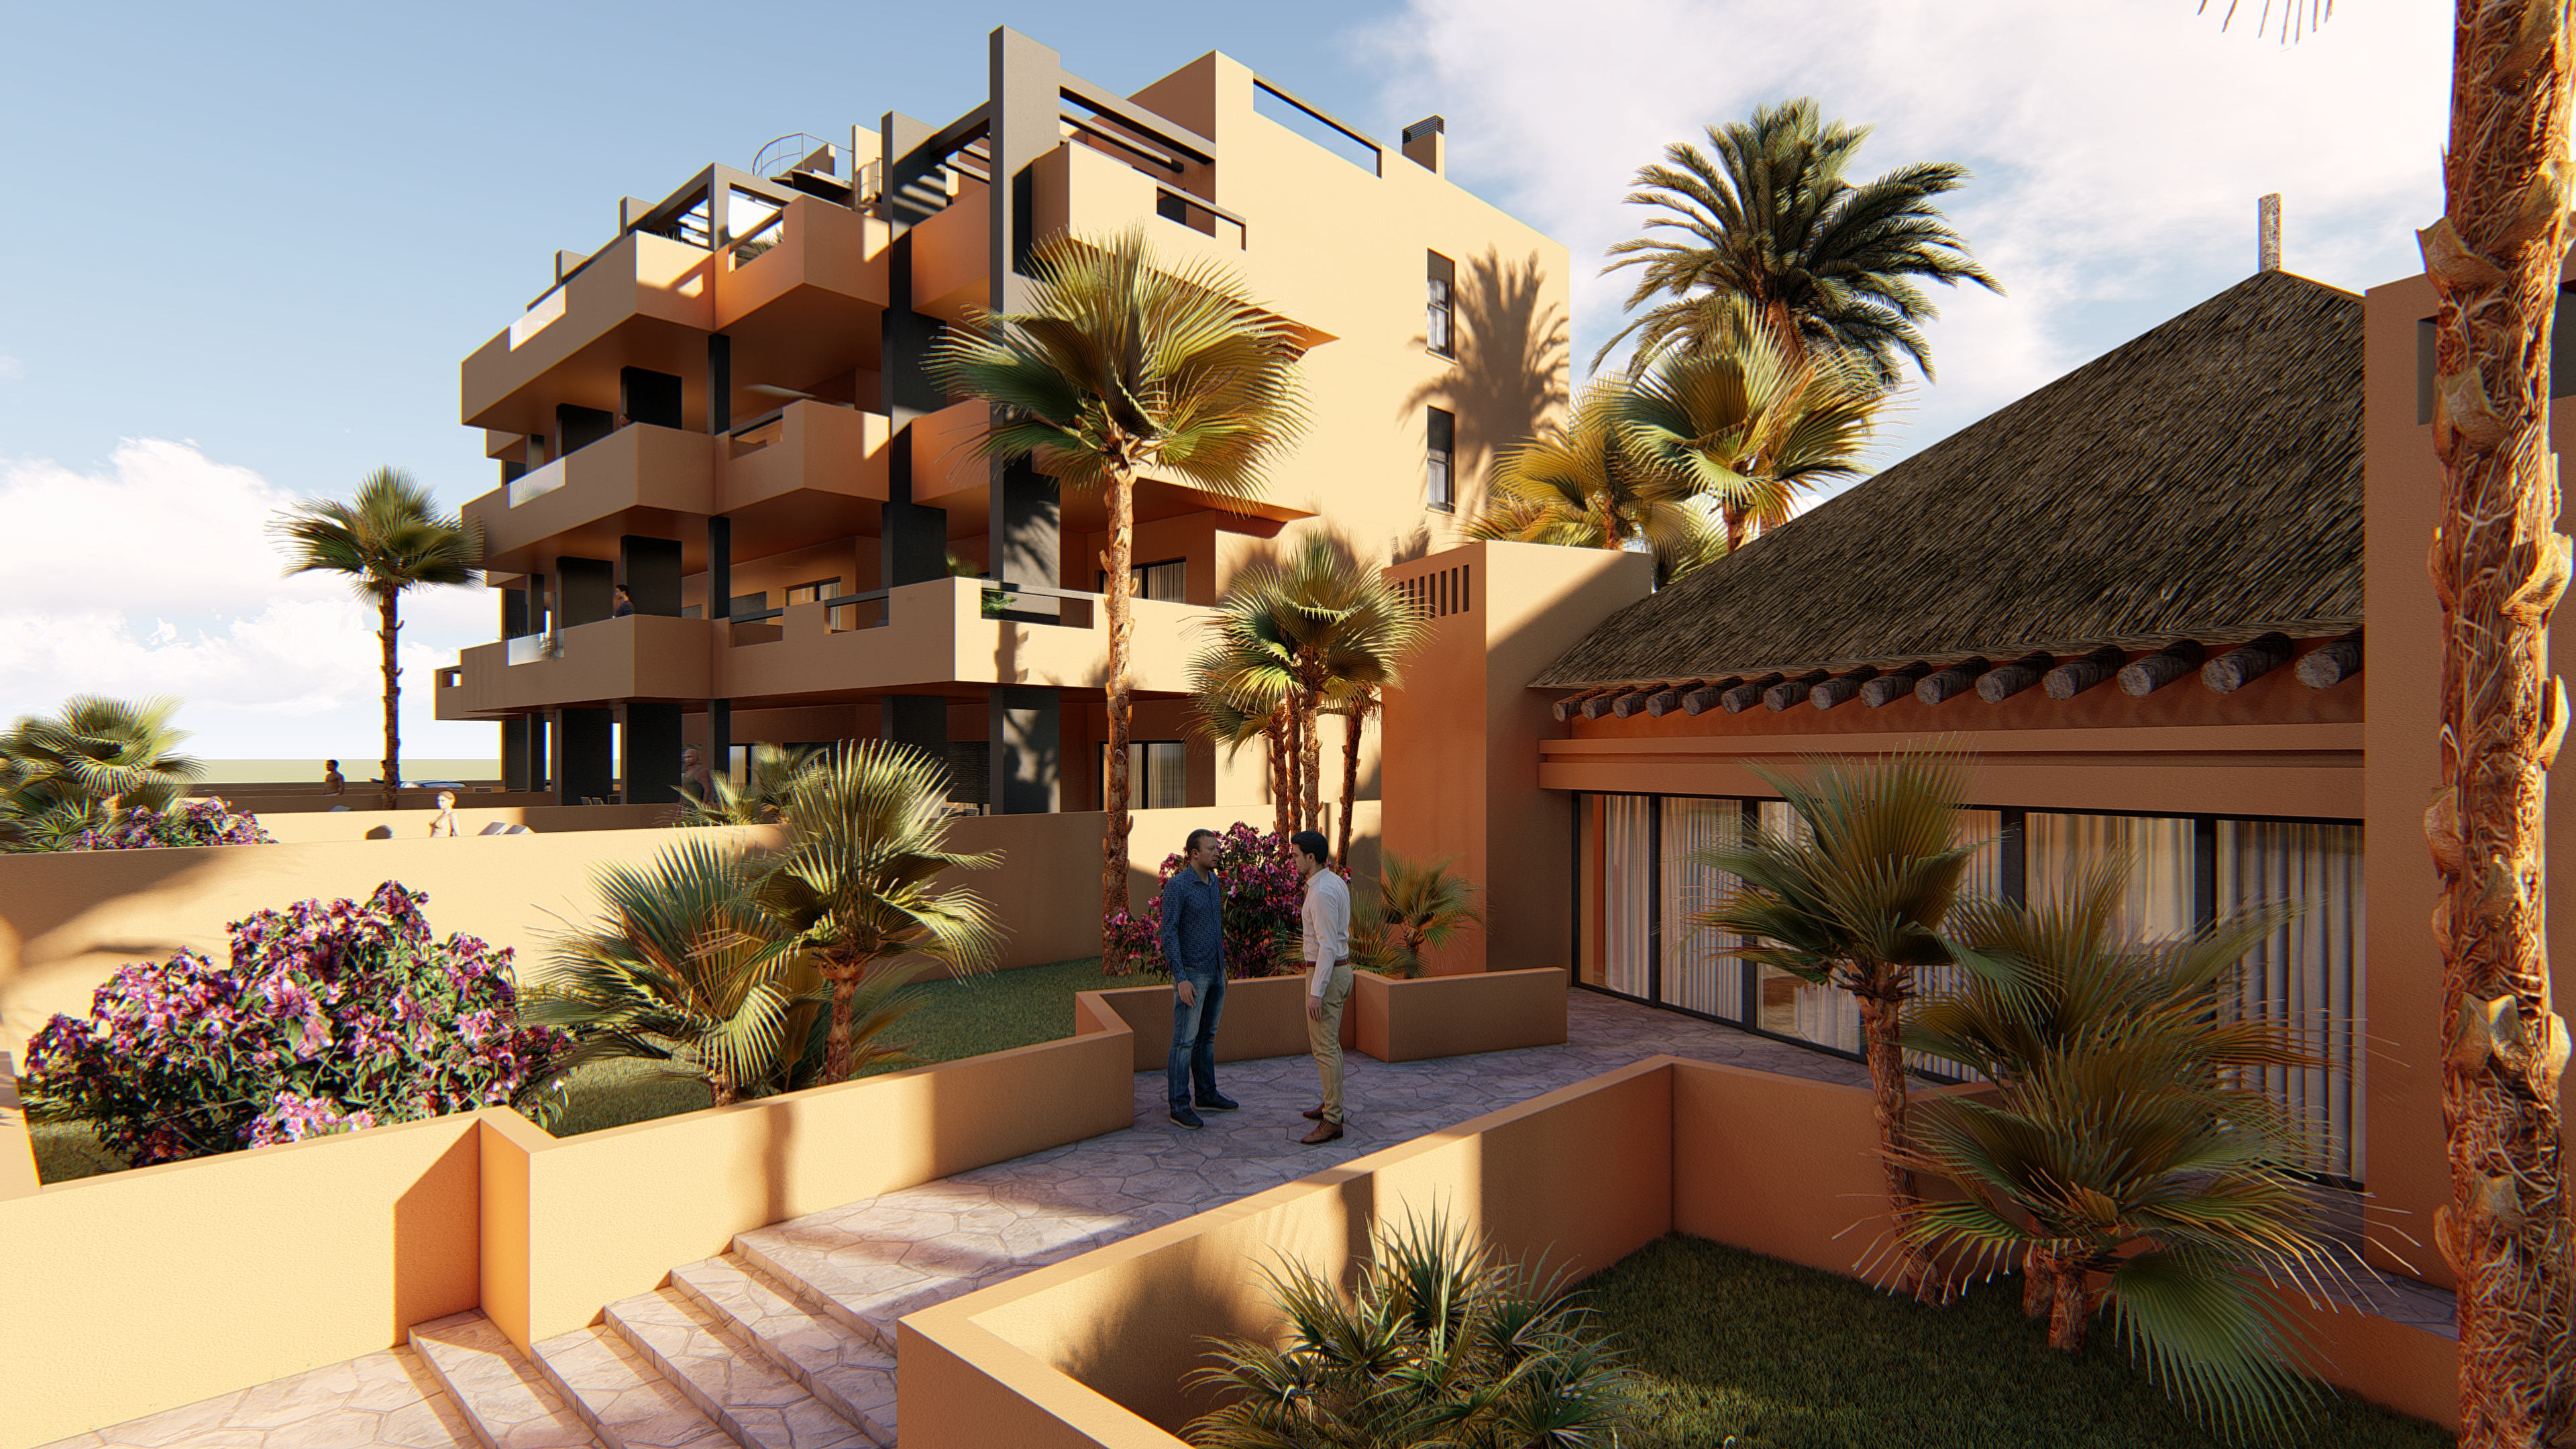 SPAIN COSTA BLANCA Villamartin, Mediterranean-style new built apartments with communal pool and garage